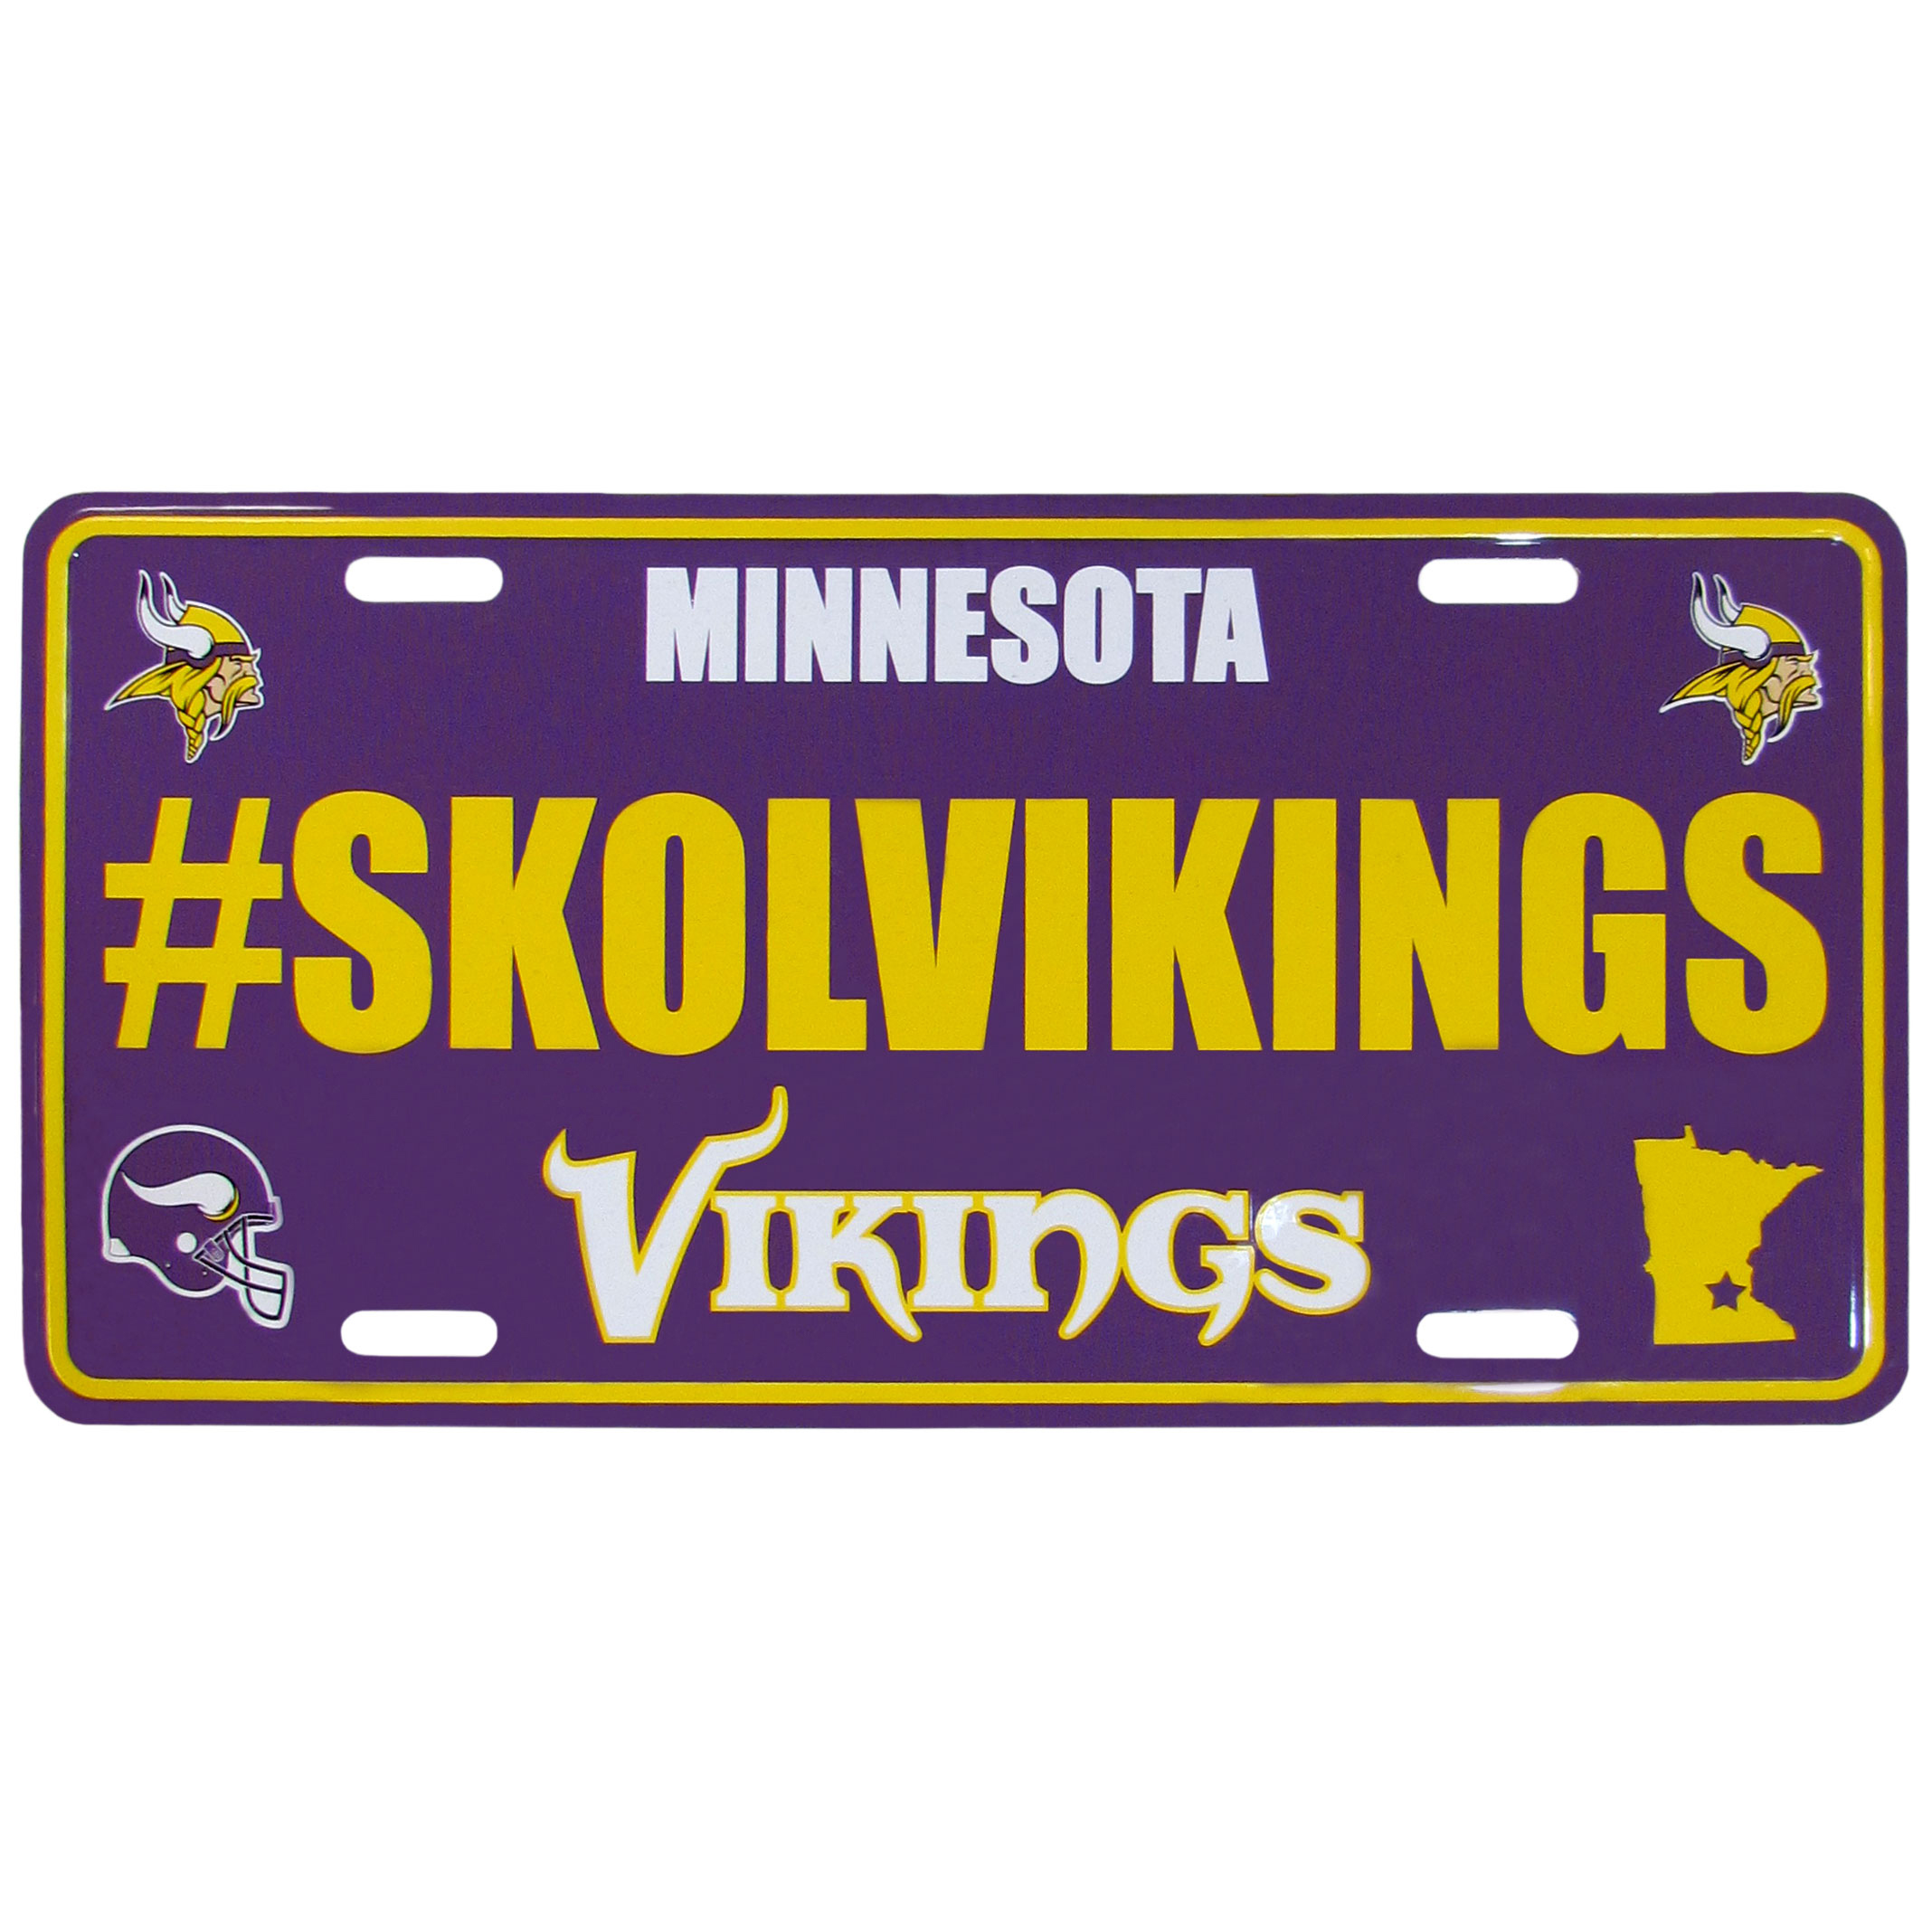 Minnesota Vikings Hashtag License Plate - It's a hashtag world! Celebrate the Minnesota Vikings with this stamped aluminum license plate with the most popular team hashtag! This bright license plate will look great on your vehicle or mounted in your fan cave.